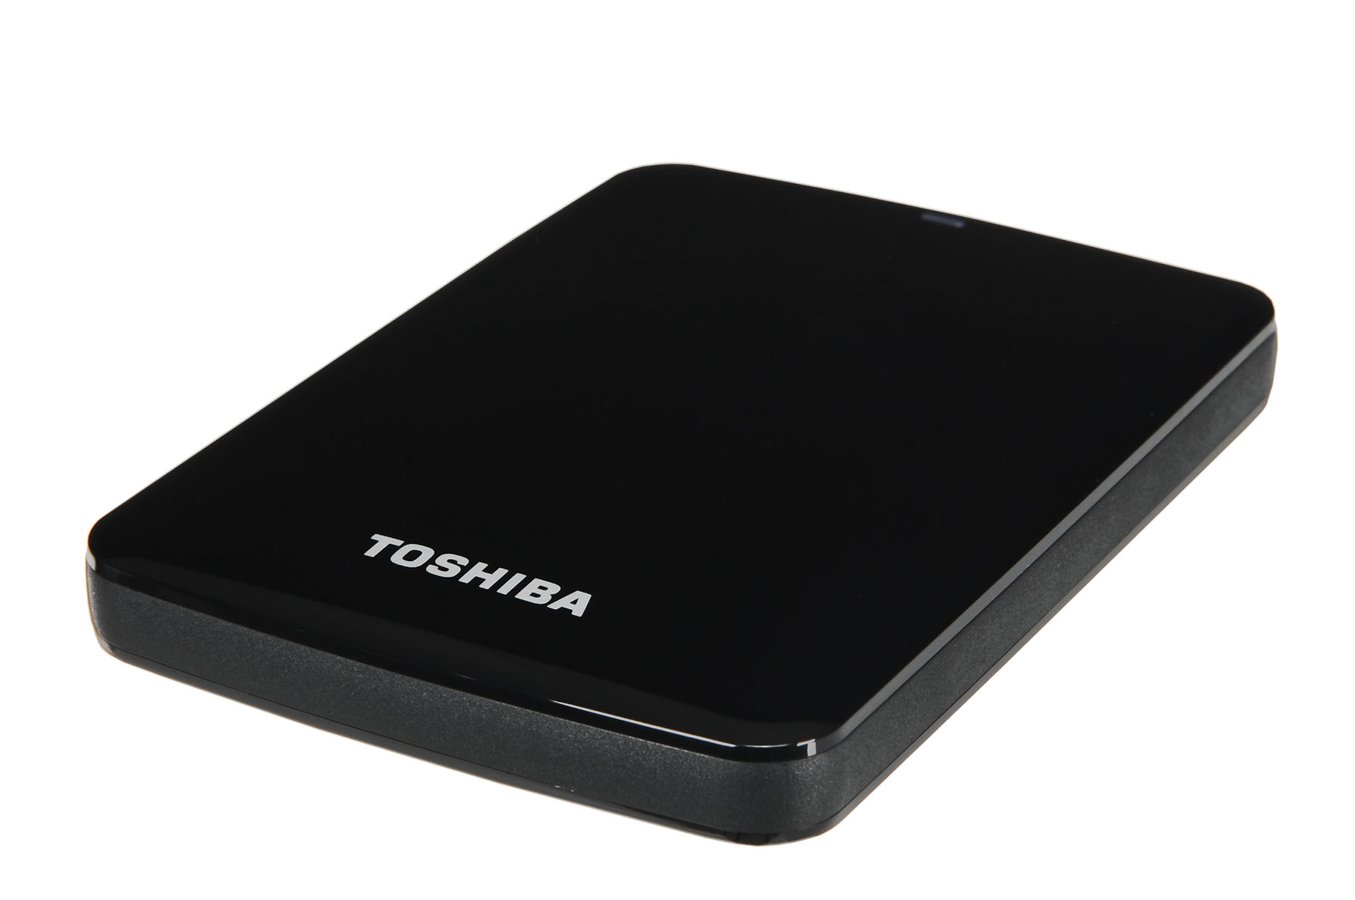 disque dur externe toshiba stor e canvio 2 5 1to usb 3 0 noir 2 5 1 to new canvio noir. Black Bedroom Furniture Sets. Home Design Ideas